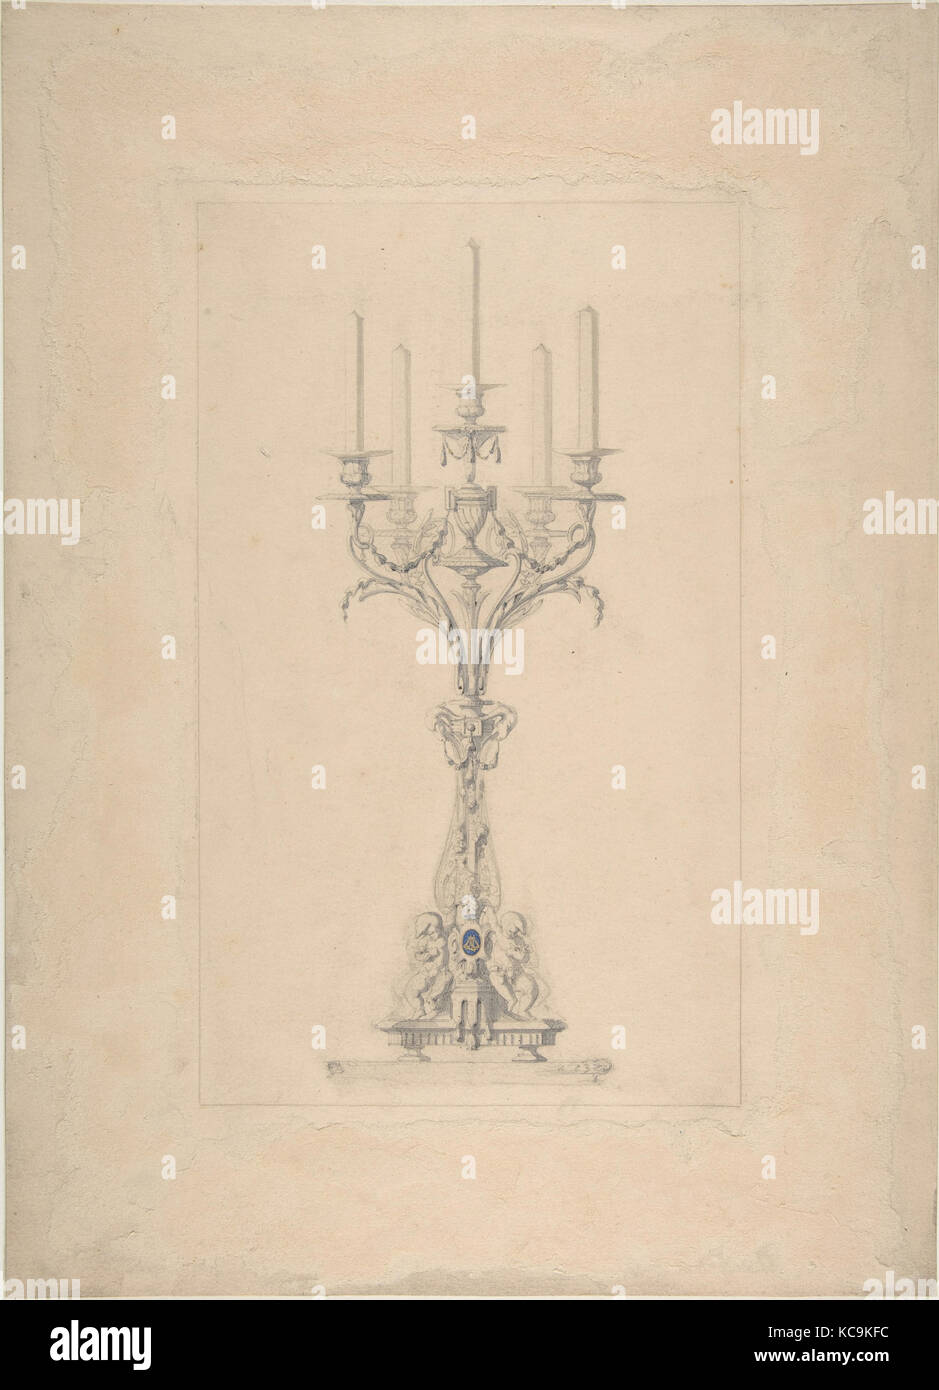 Design for a Five Branched Candlestick Supported by Putti, Anonymous, British, late 19th to early 2th century - Stock Image